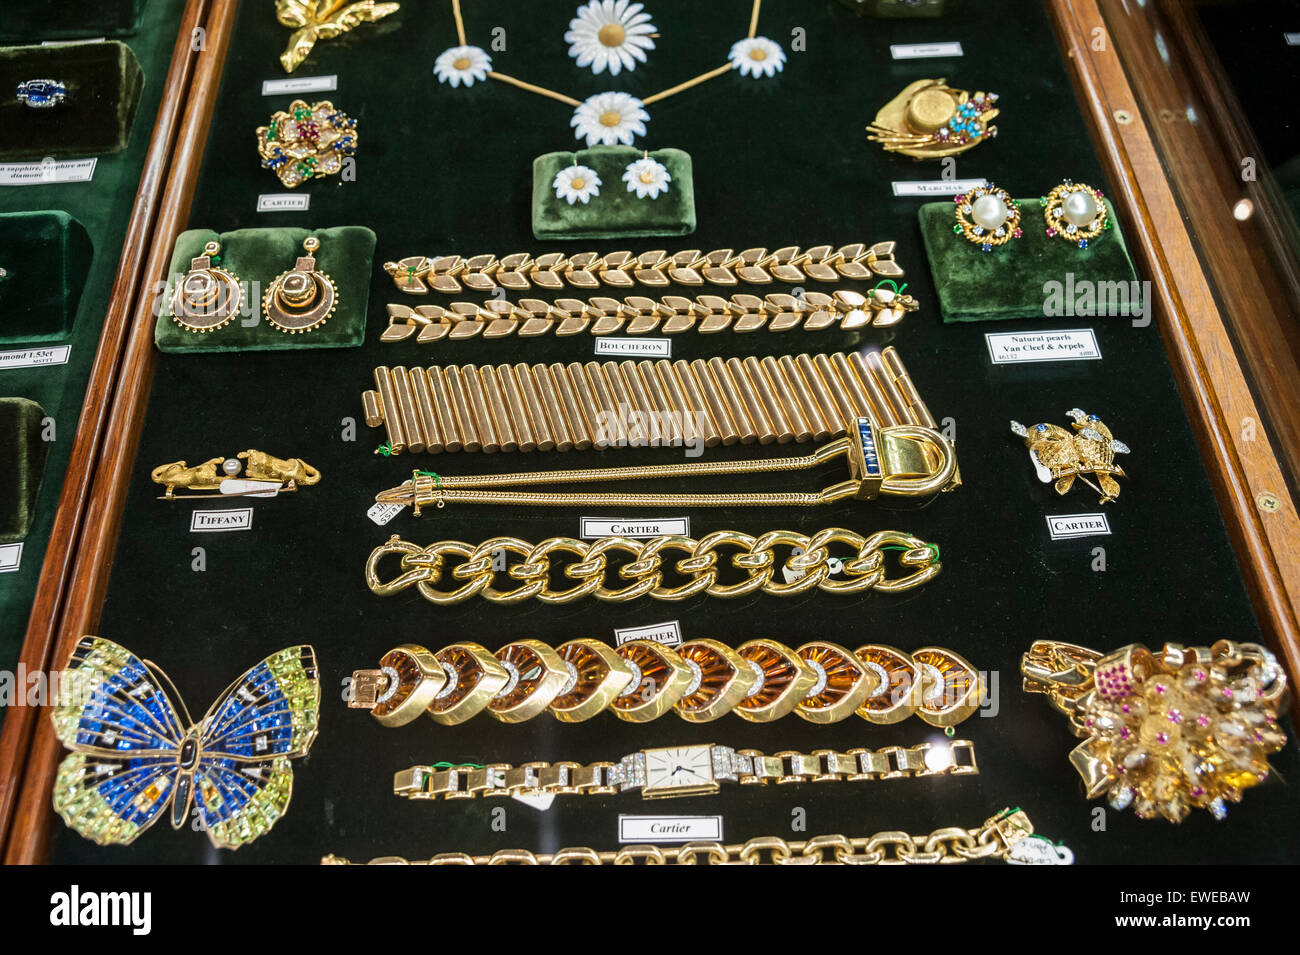 Antique jewellery fair stock photos antique jewellery fair stock london uk 24 june 2015 antique cartier jewellery on display at the aloadofball Choice Image